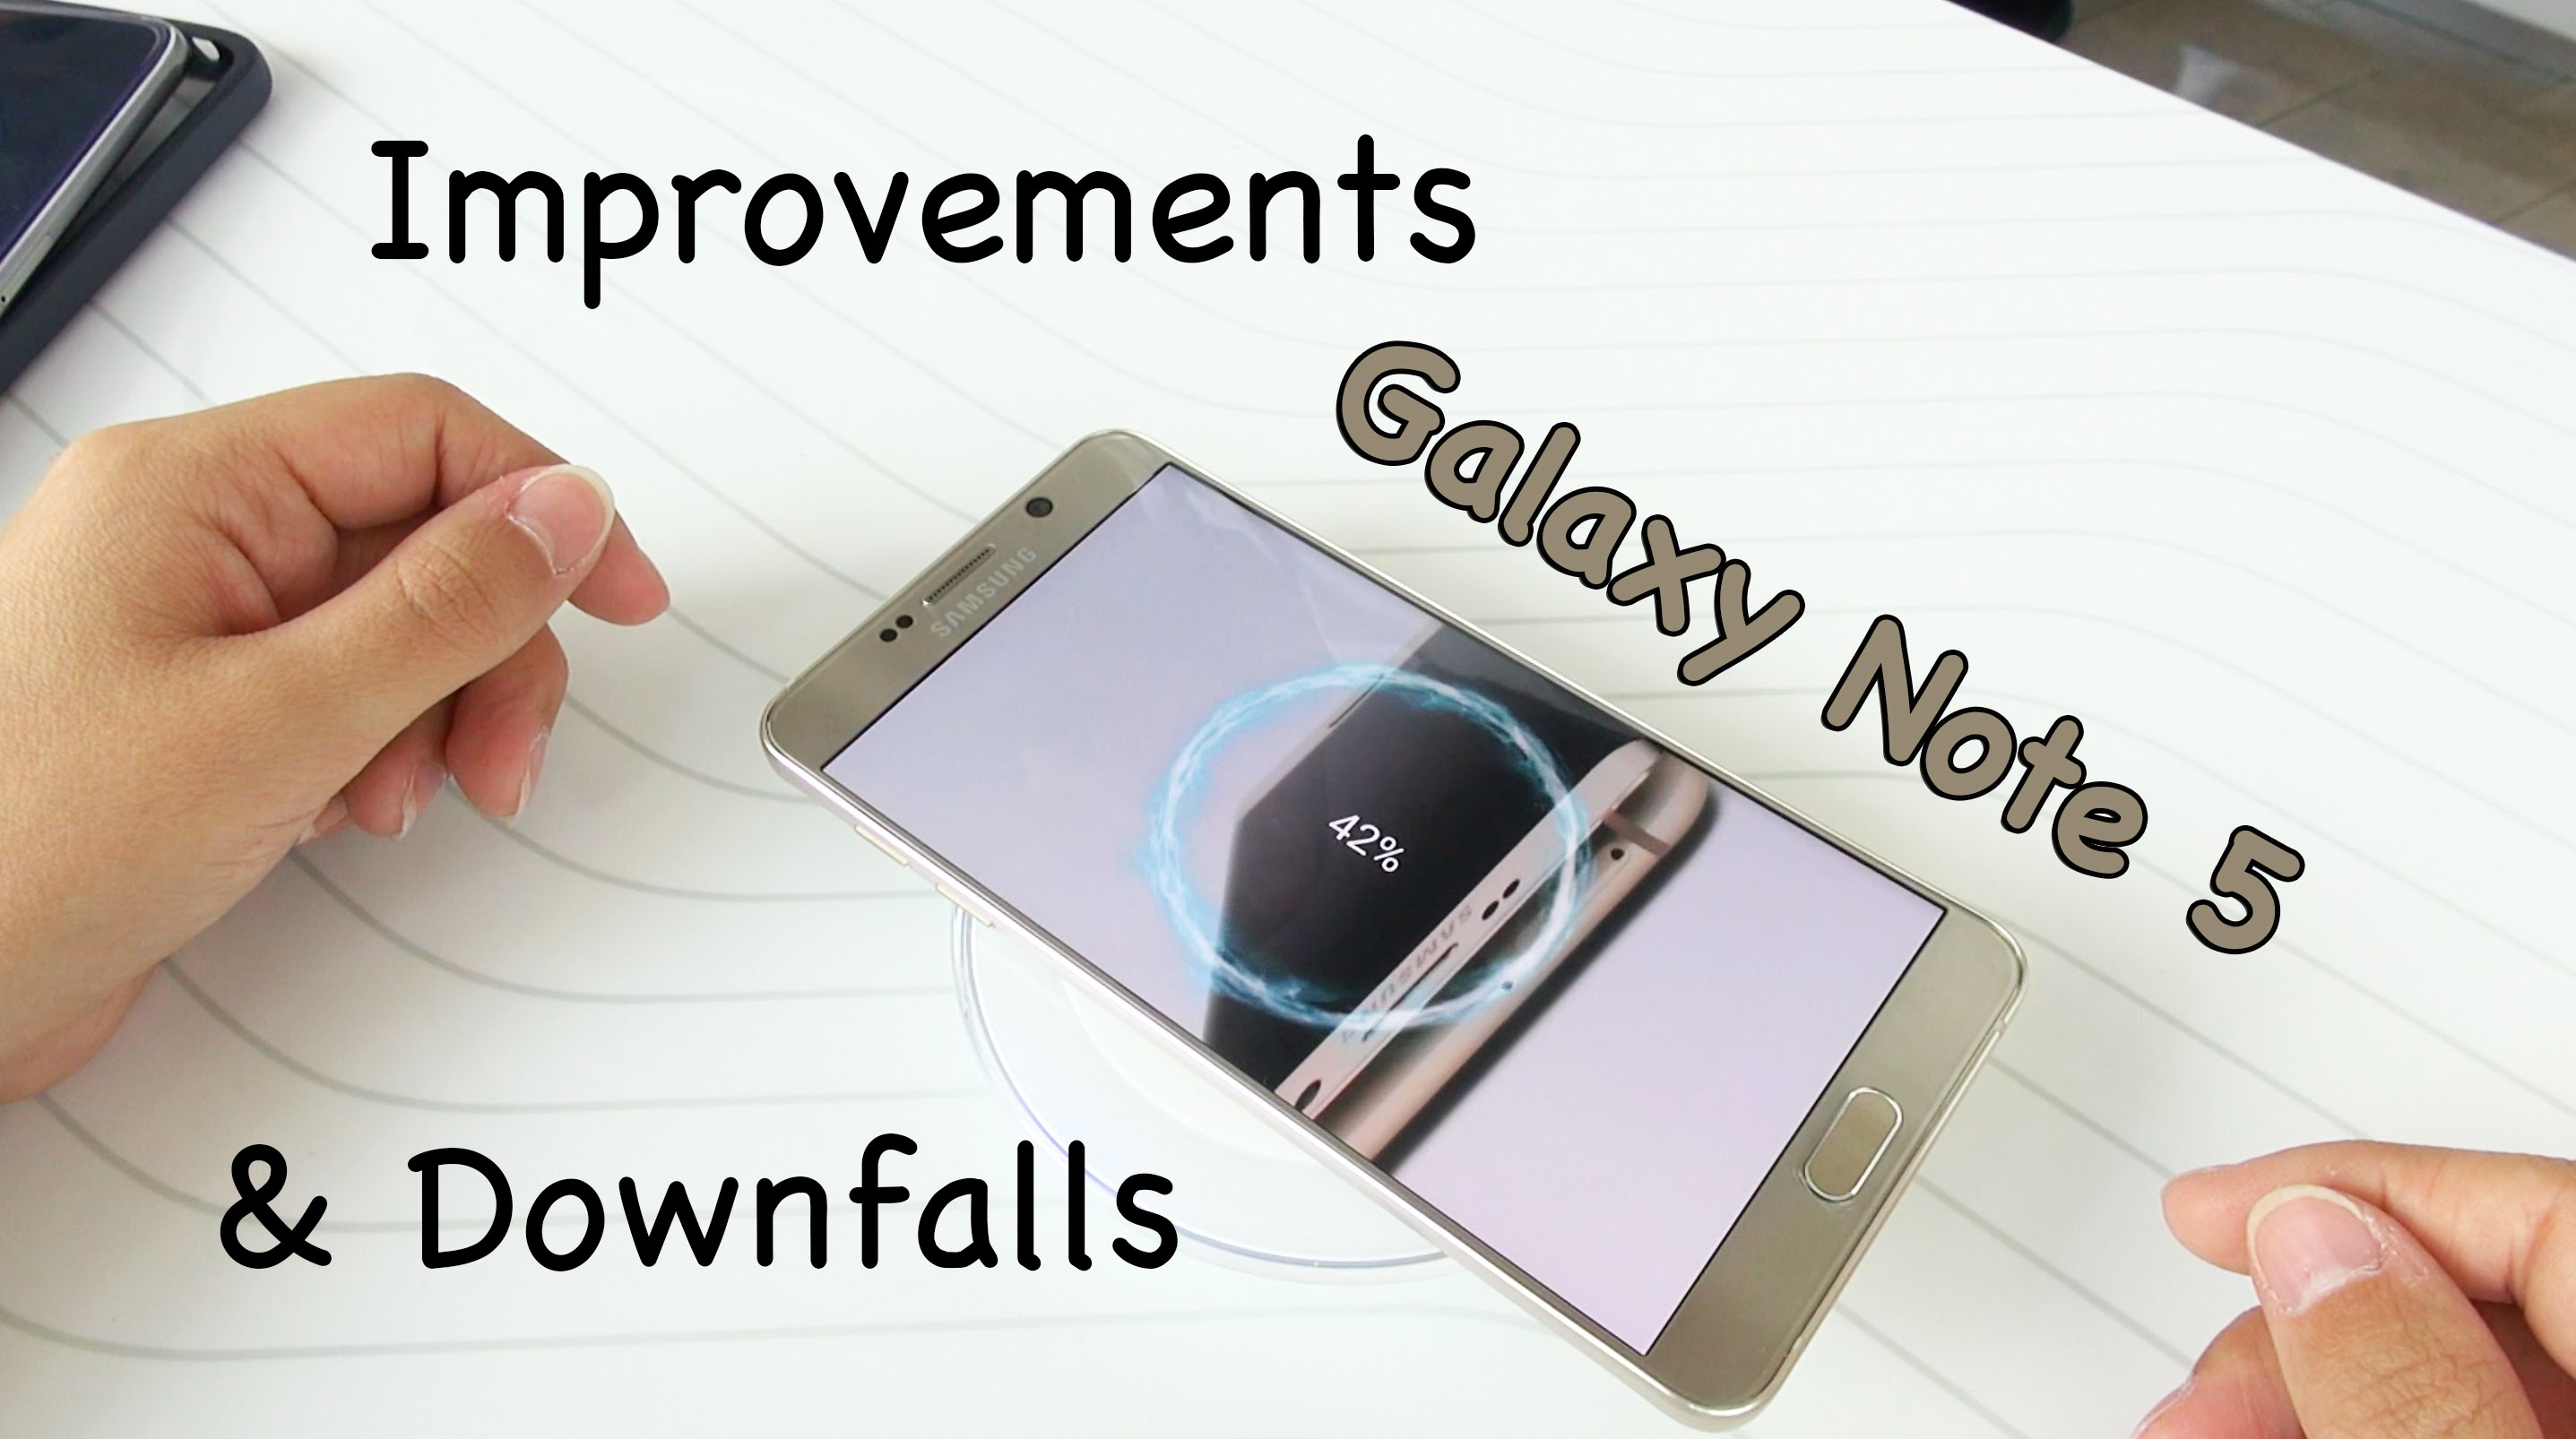 Samsung Galaxy Note 5 Downfalls and Improvements: Hands On